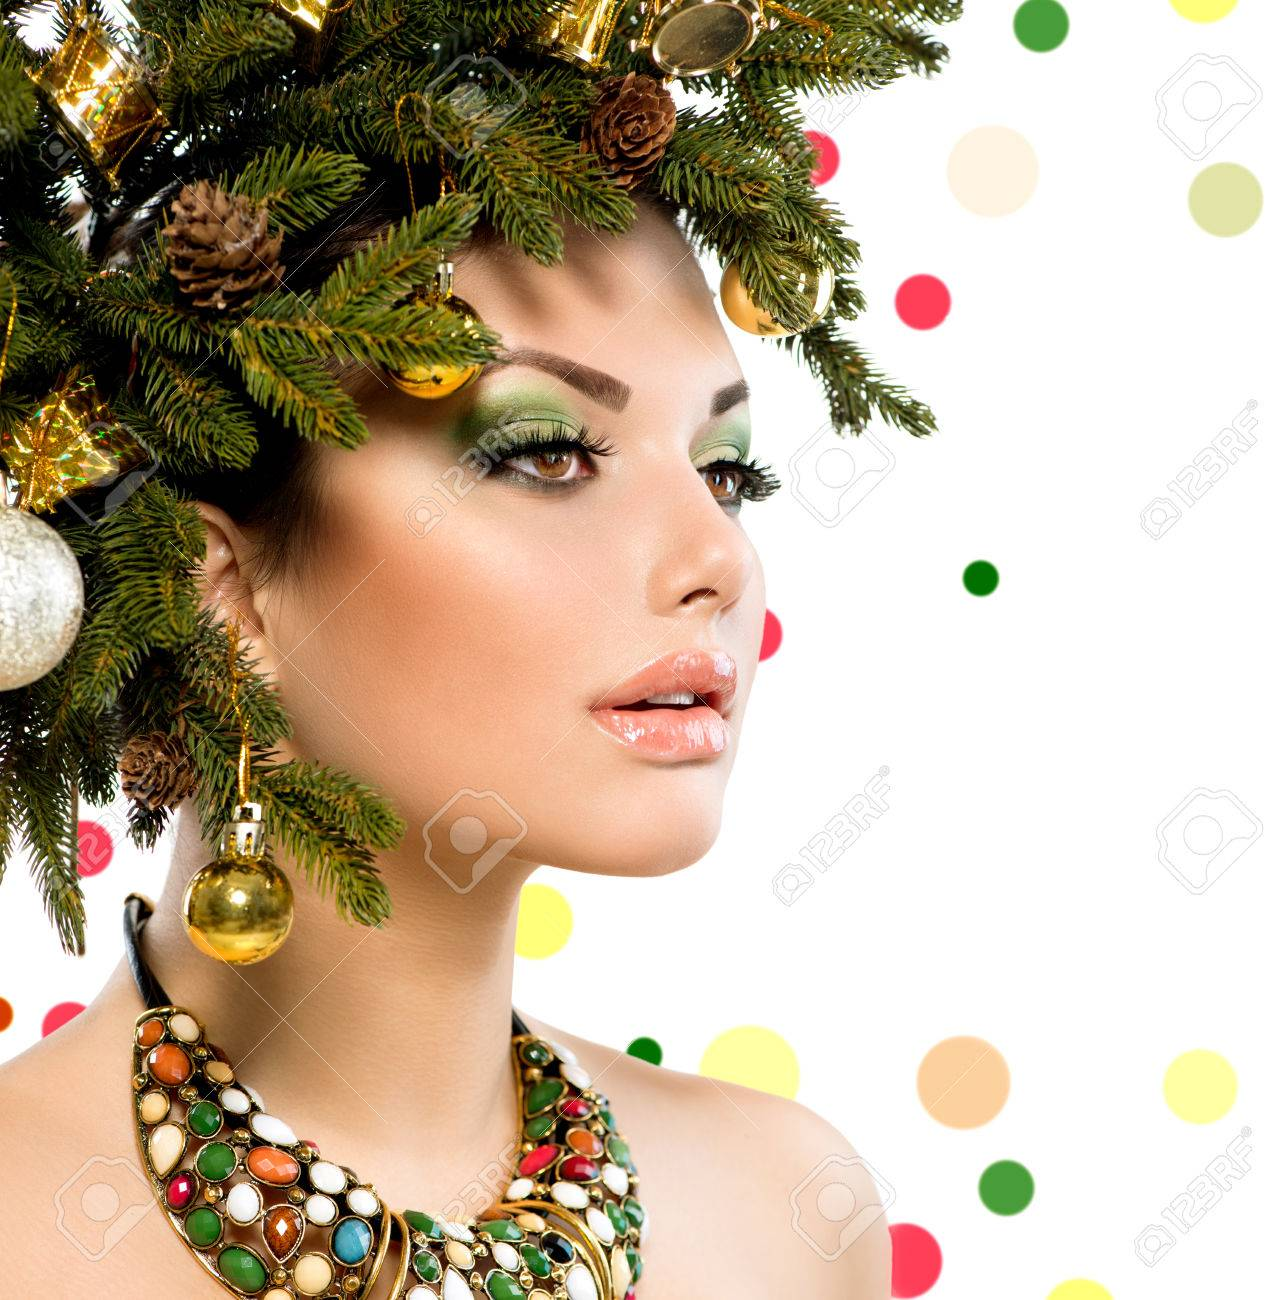 Christmas Woman  Christmas Holiday Hairstyle and Makeup Stock Photo - 23420255